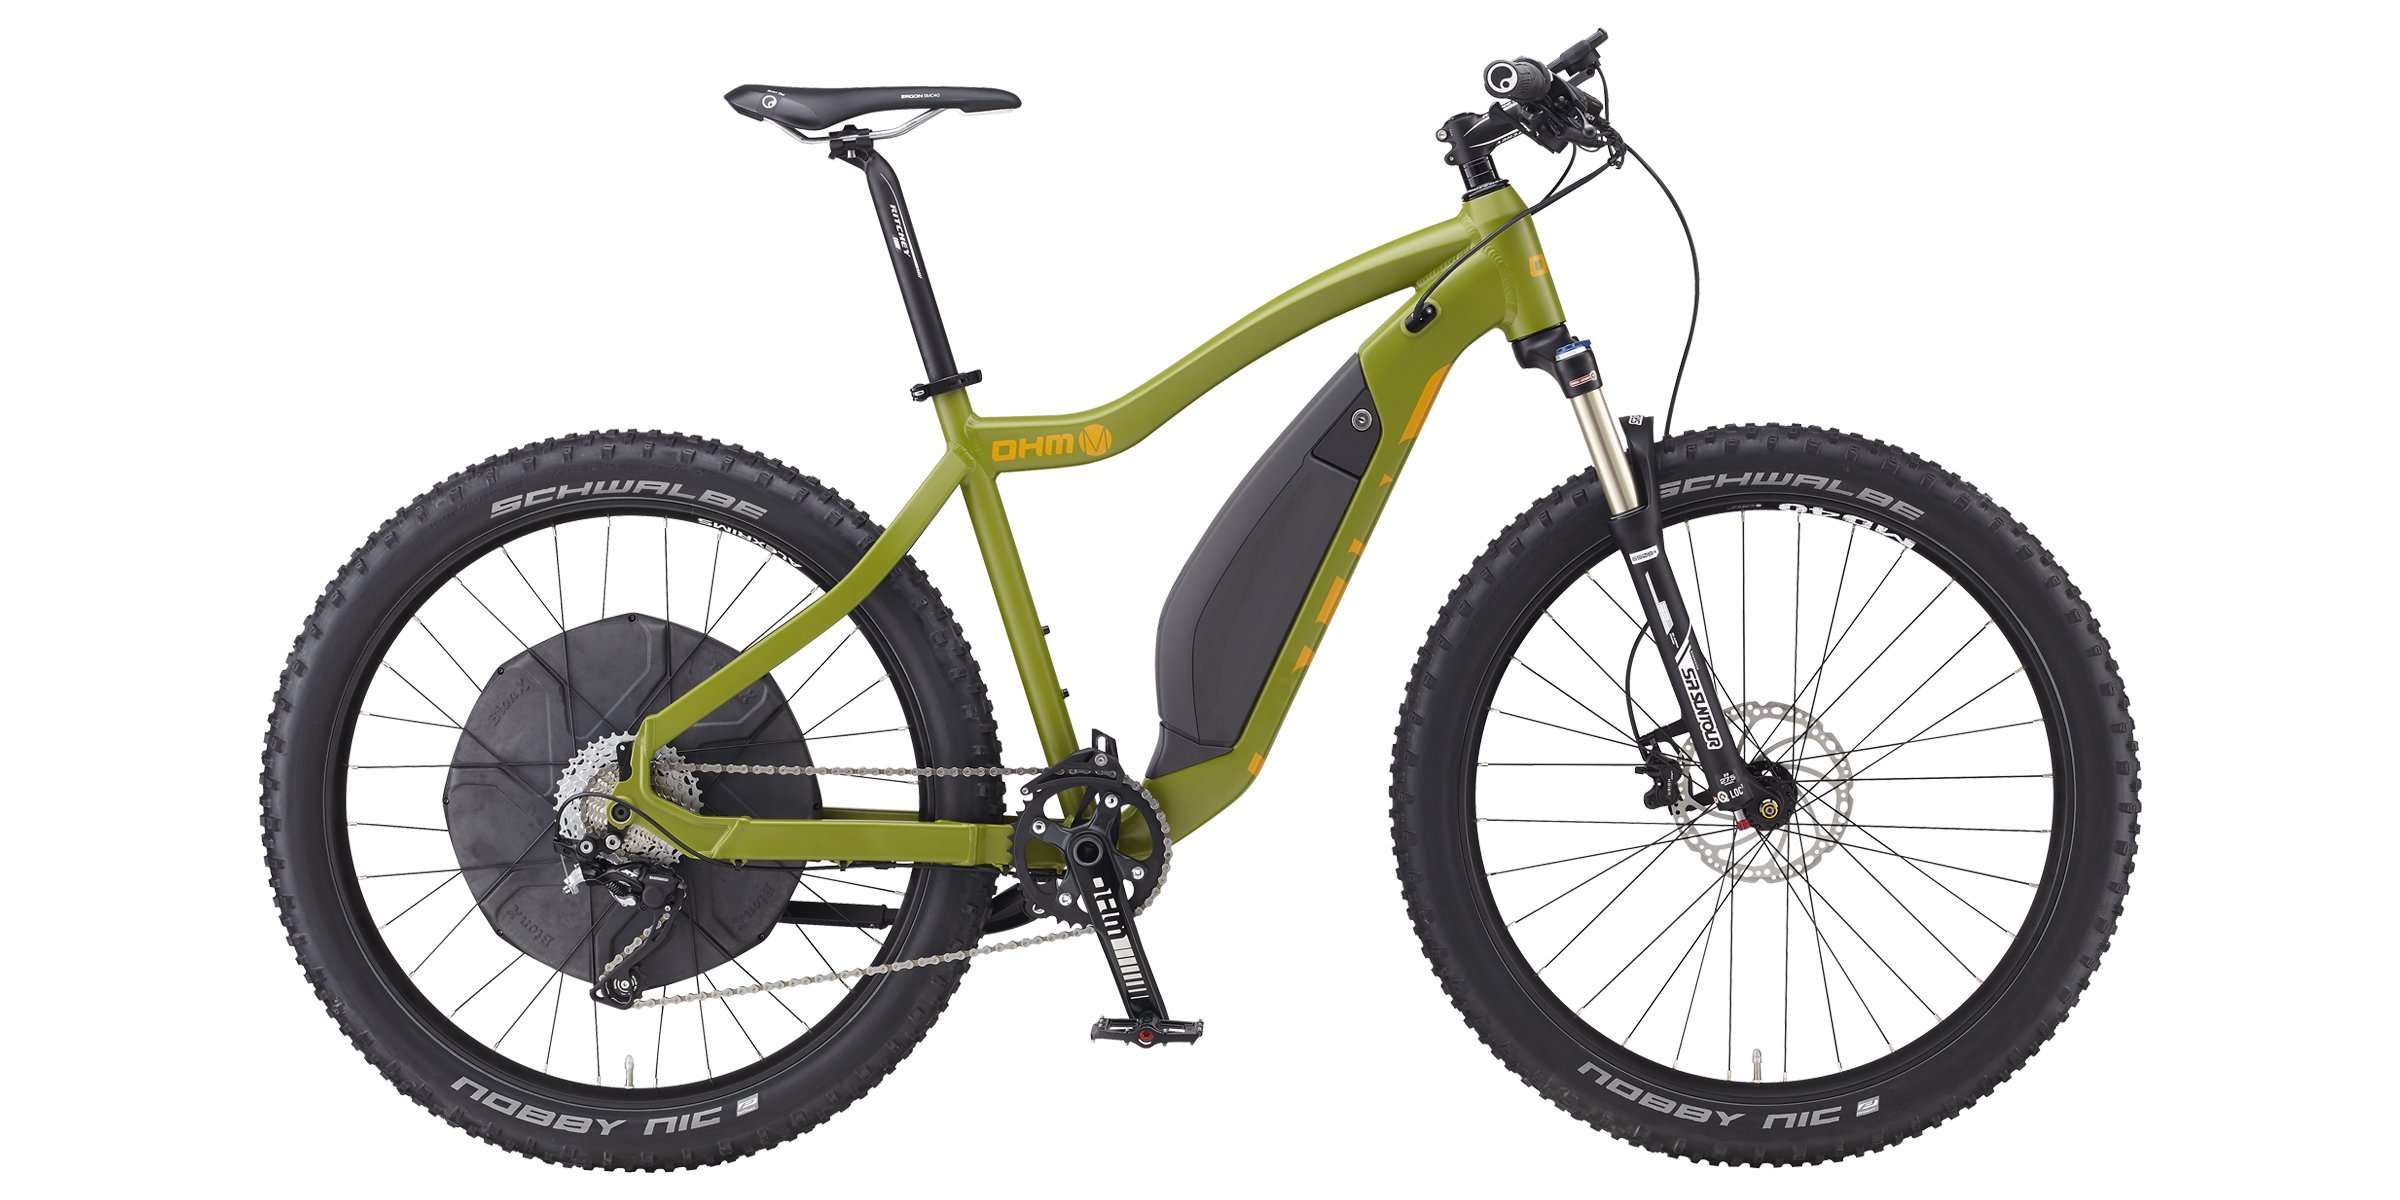 OHM MOUNTAIN E BIKE REVIEW